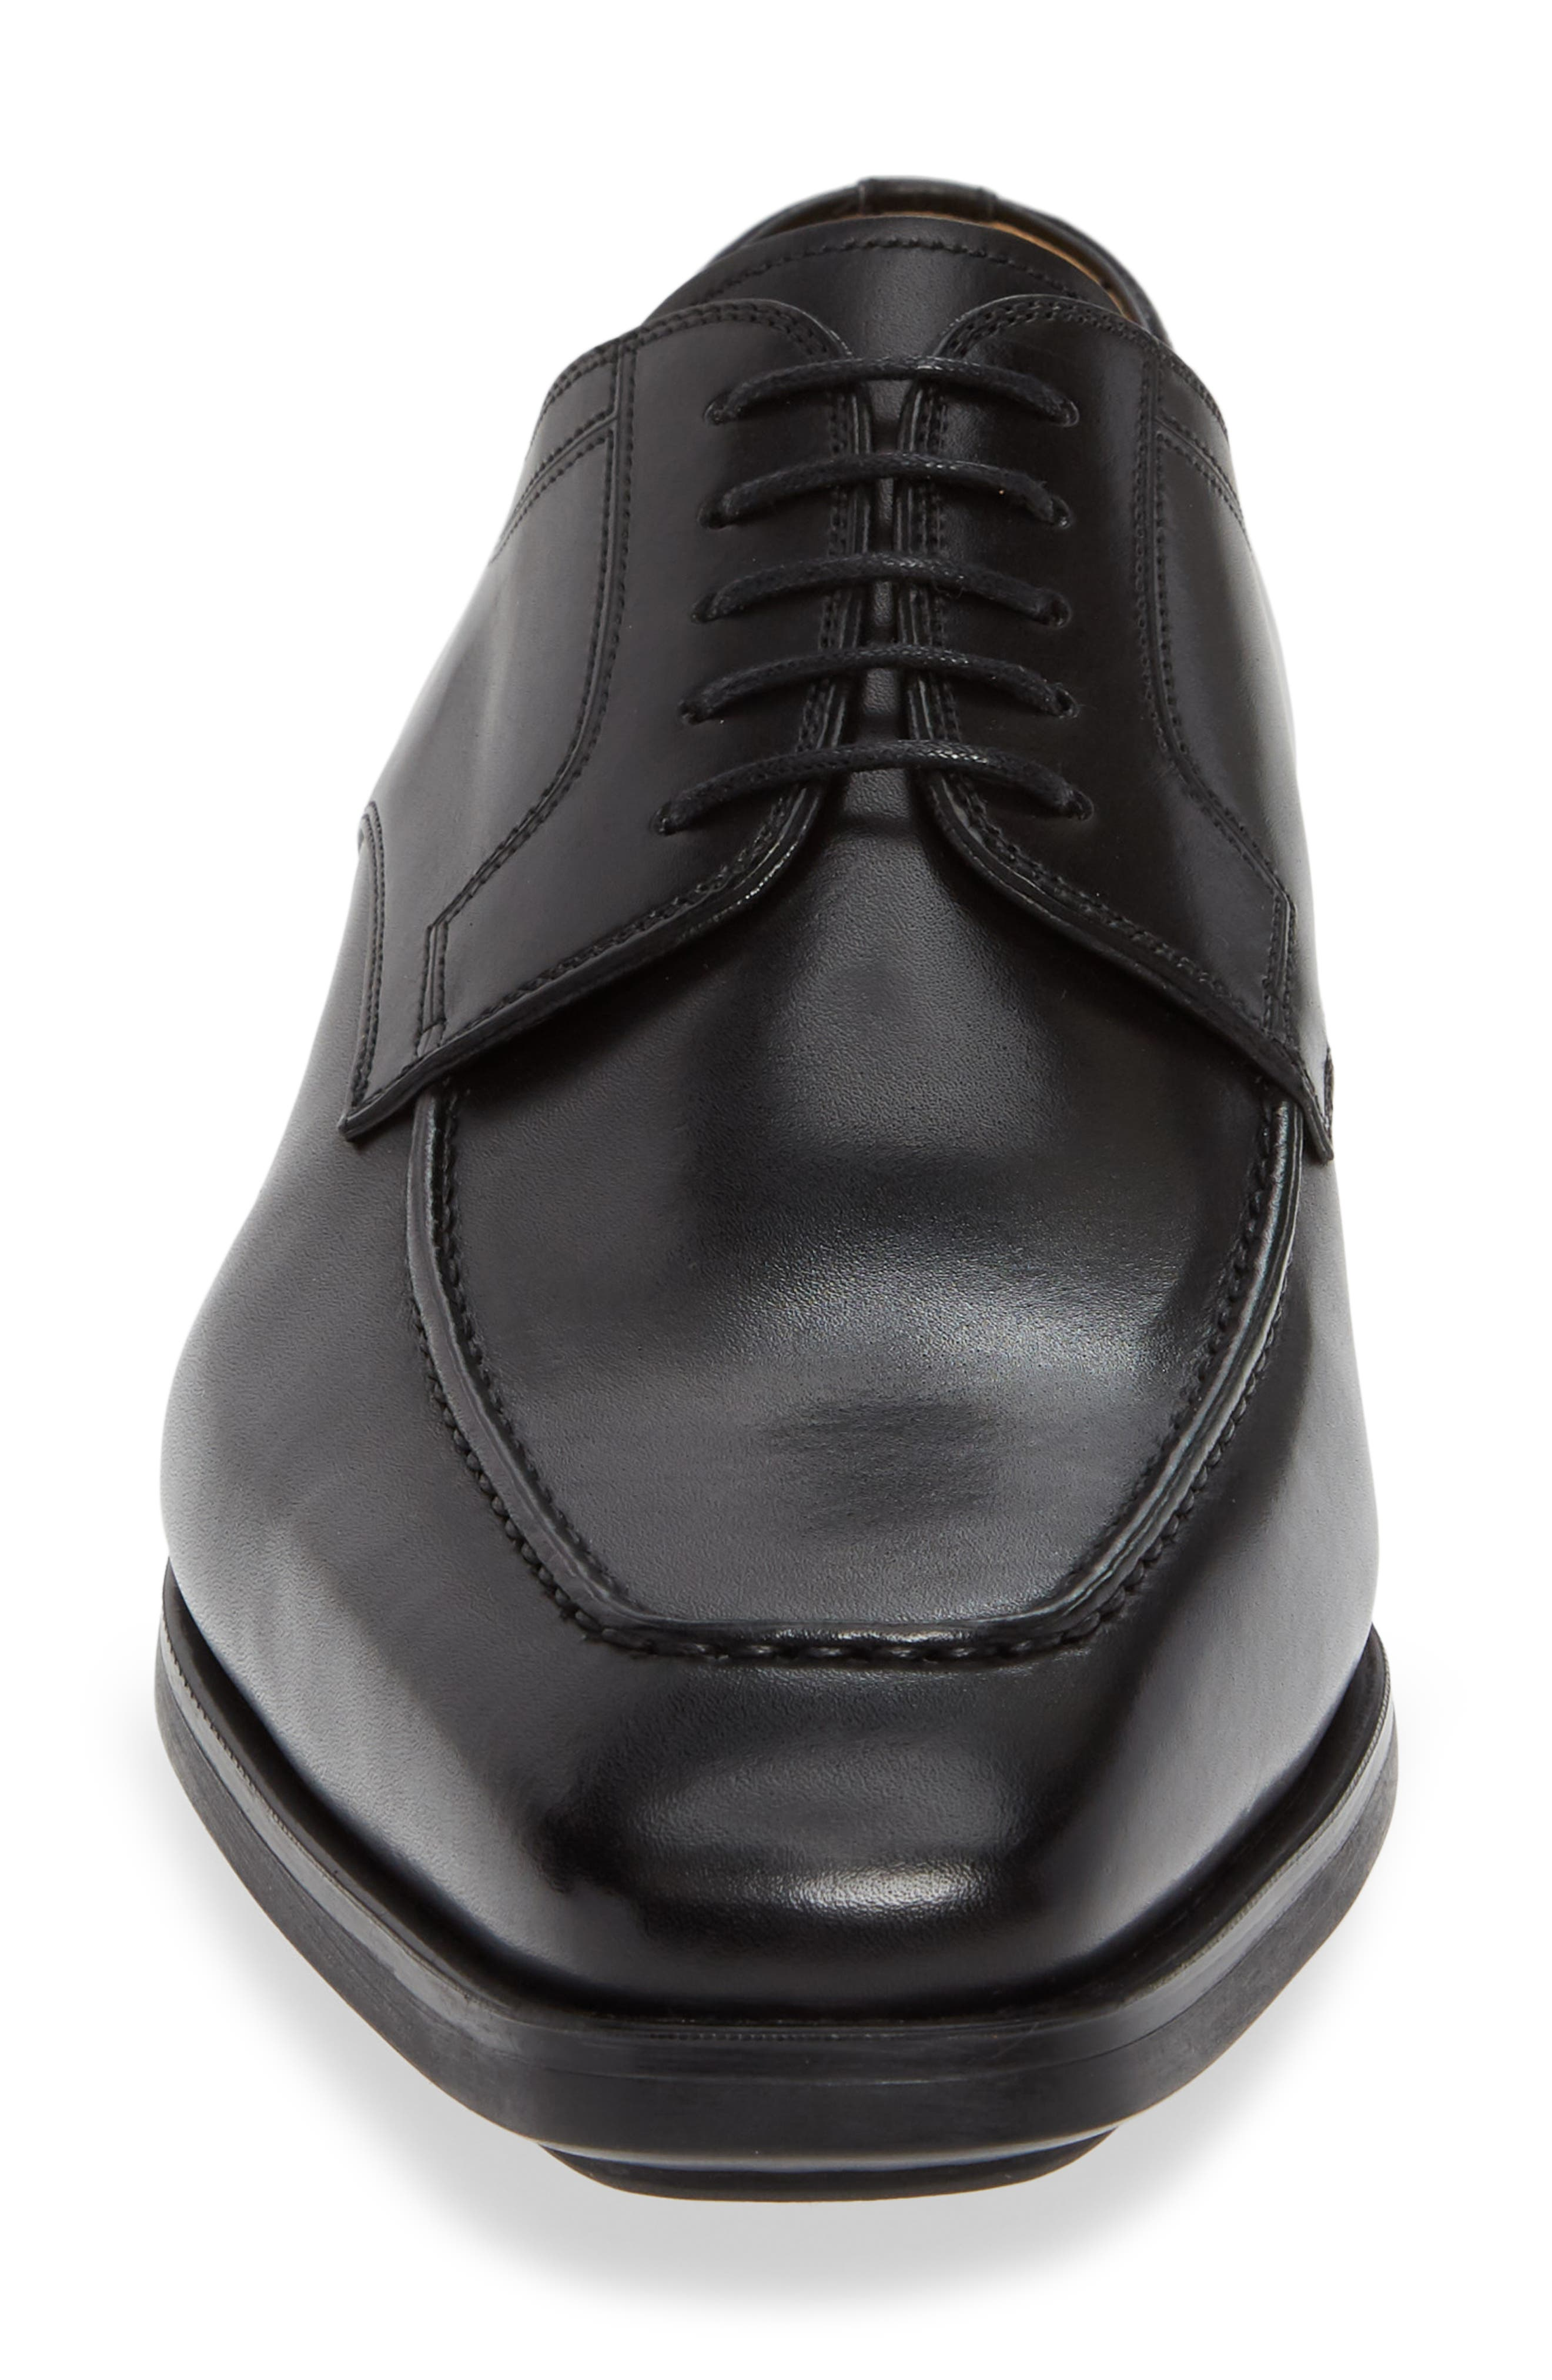 MAGNANNI, Romelo Diversa Apron Toe Derby, Alternate thumbnail 4, color, BLACK LEATHER